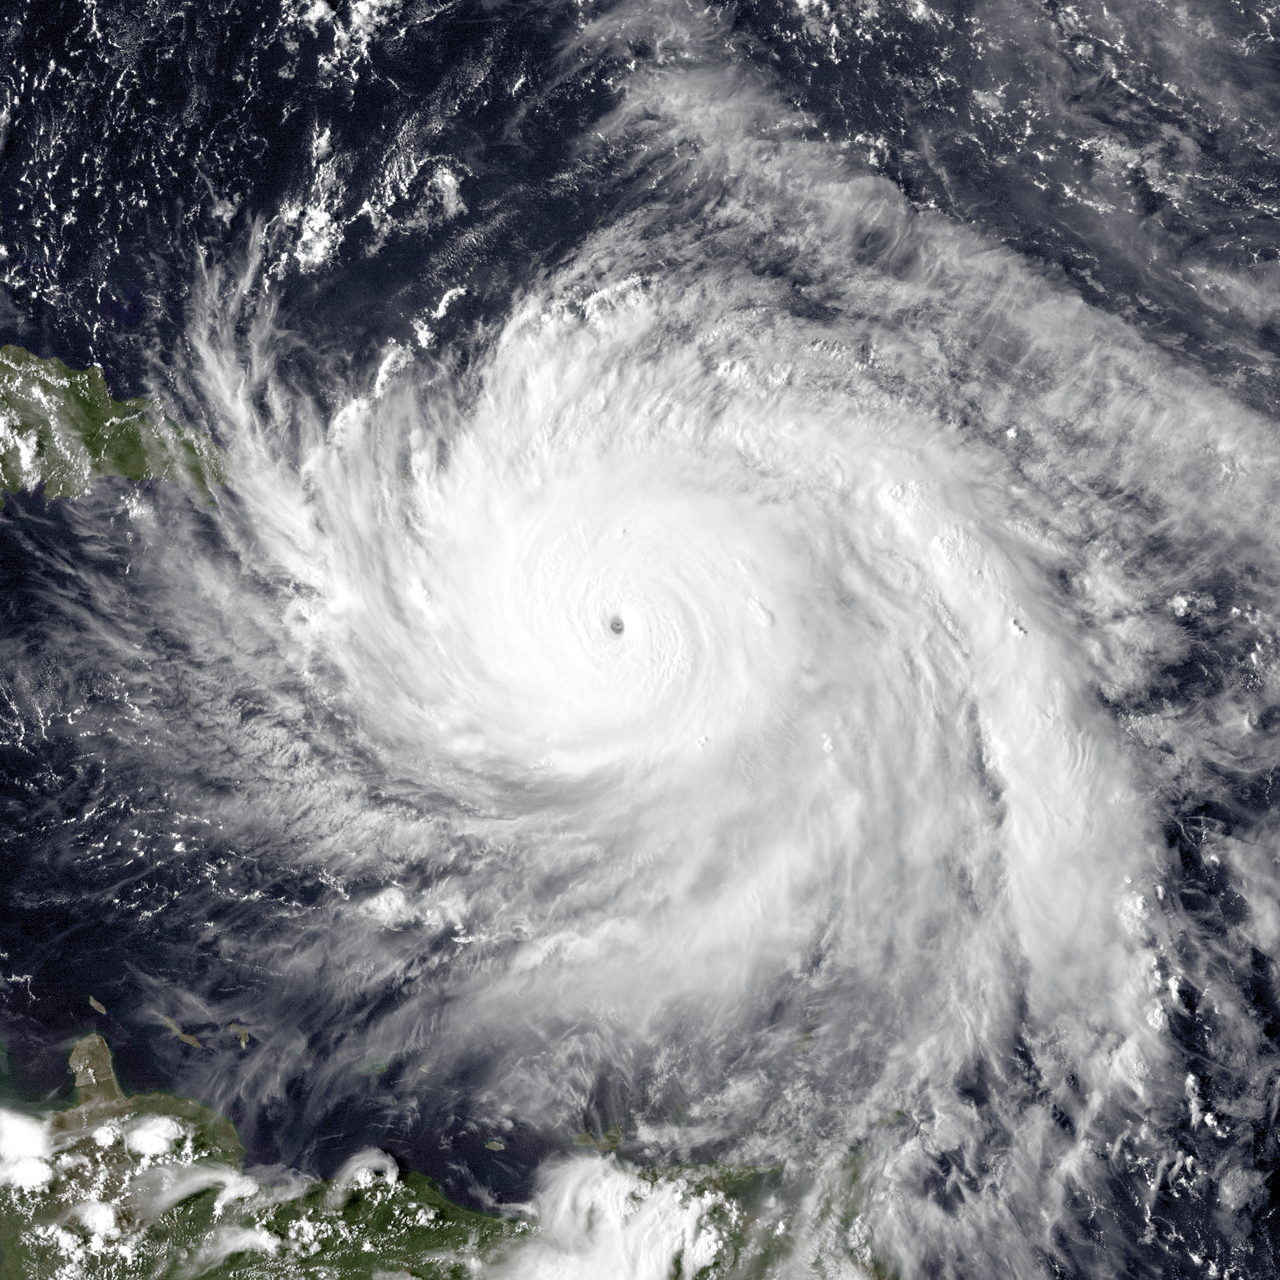 Hurricane Maria, the strongest hurricane of the season, just north of Dominica.